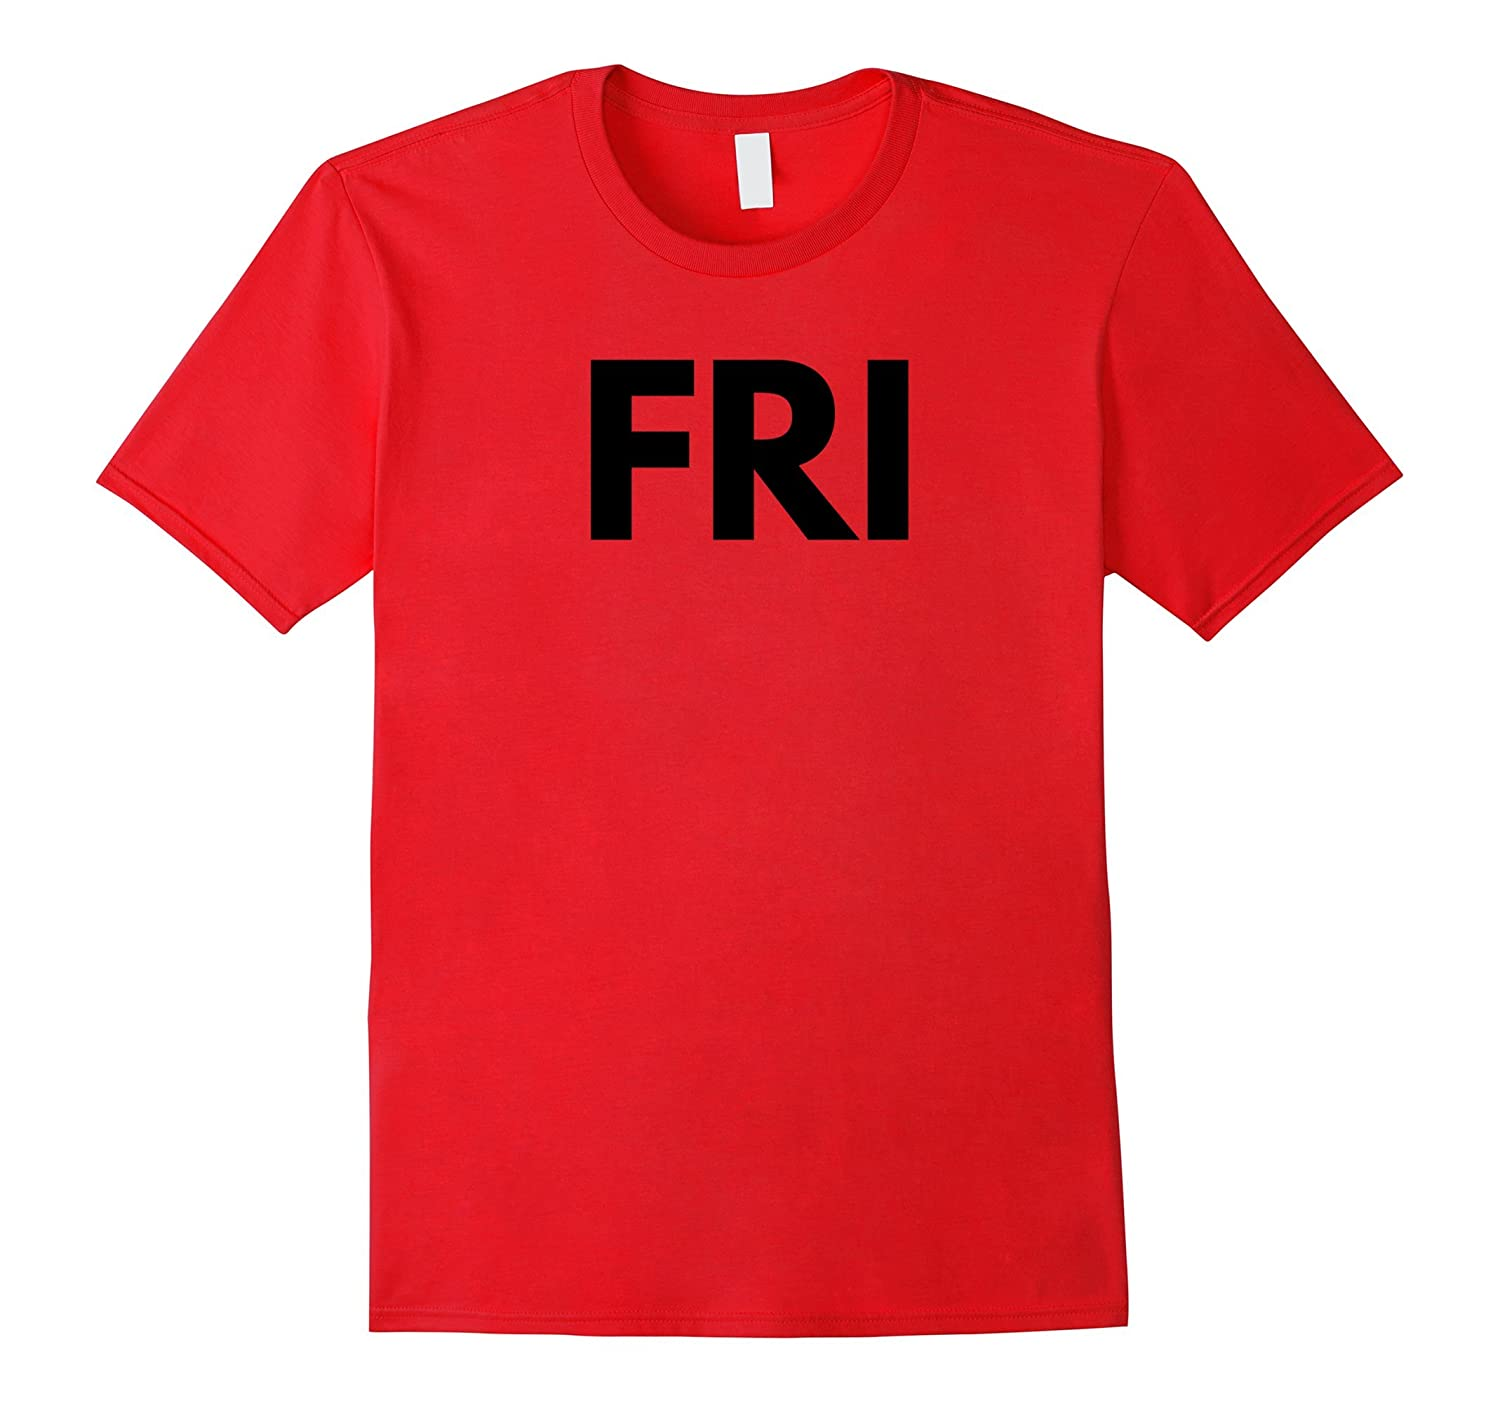 Friday T-Shirt Days of the Week T-Shirts, Costume, Etc-T-Shirt